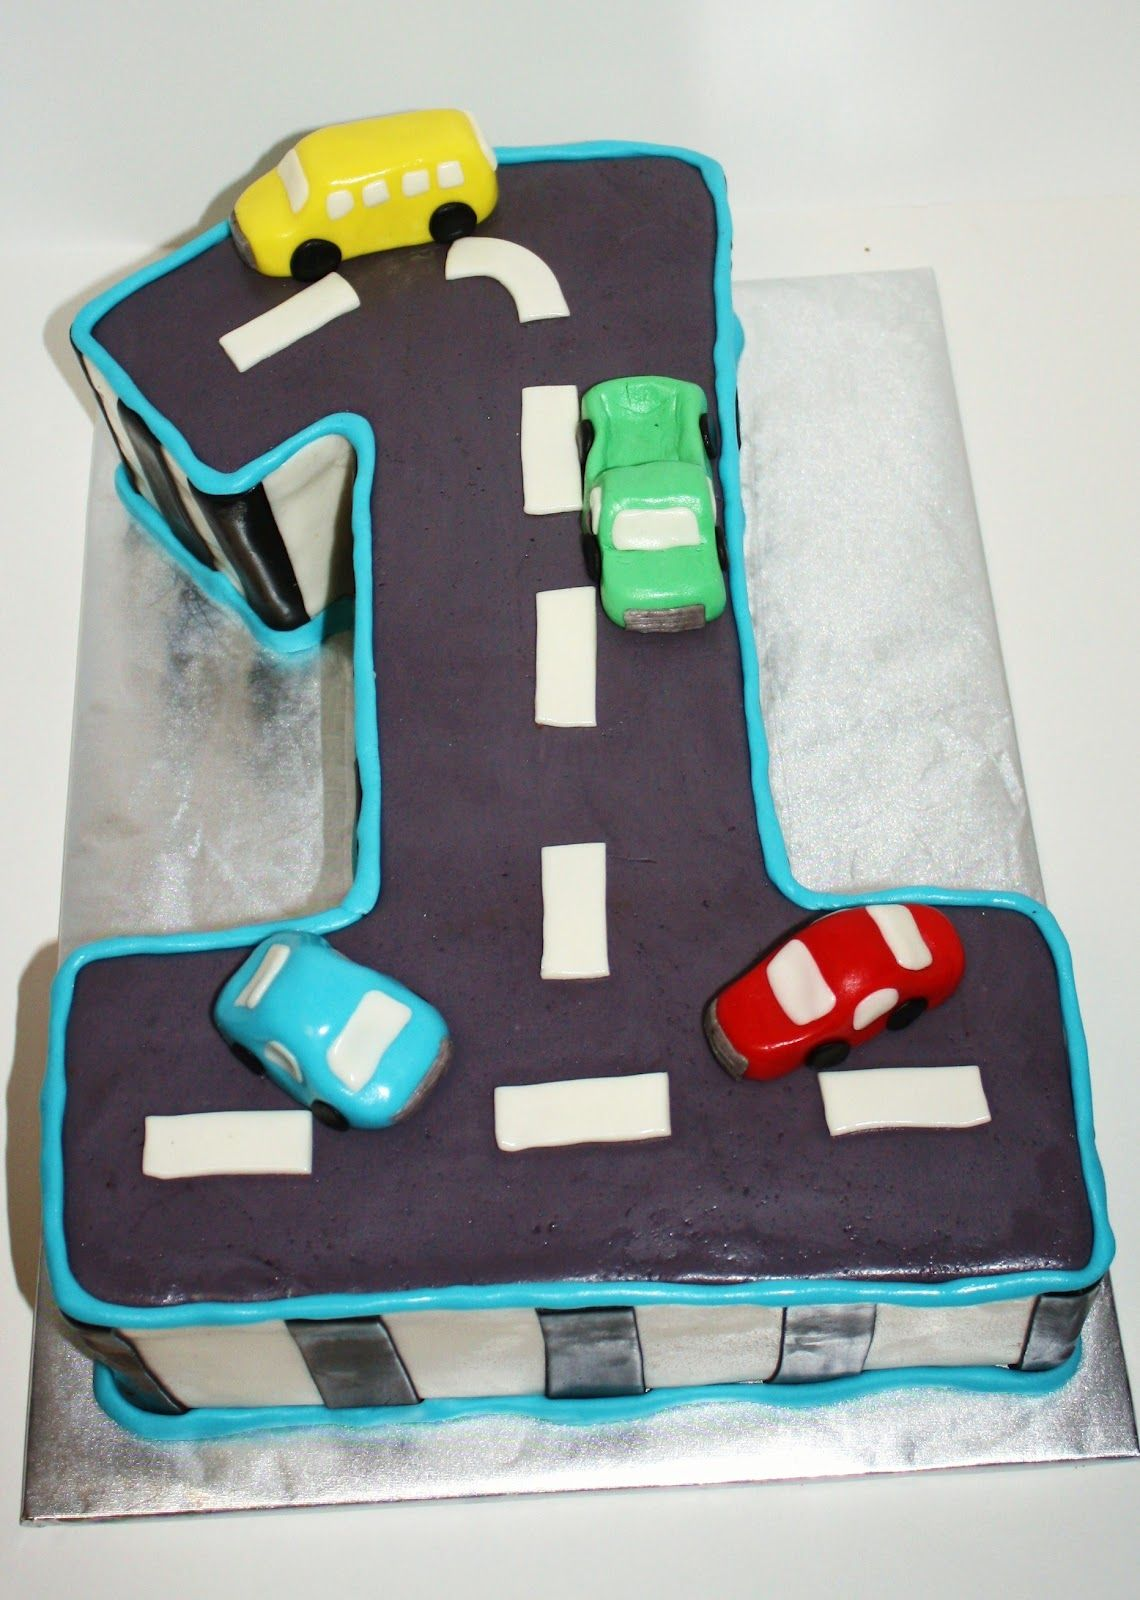 boys cup cake first birthday cakes Car first birthday cake Food